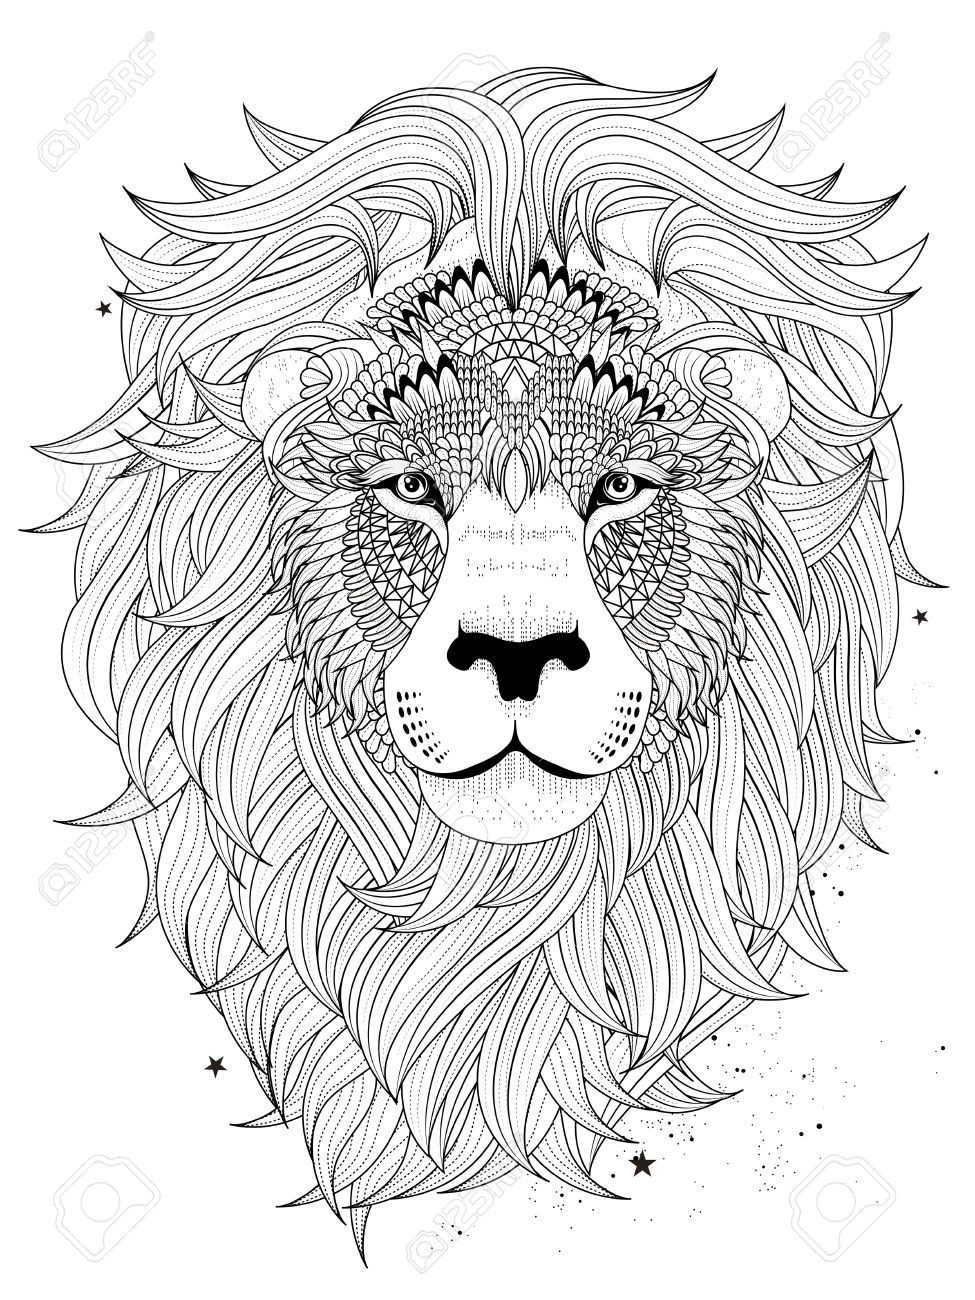 Image result for free lion adult coloring page coloring for Lion mandala coloring pages